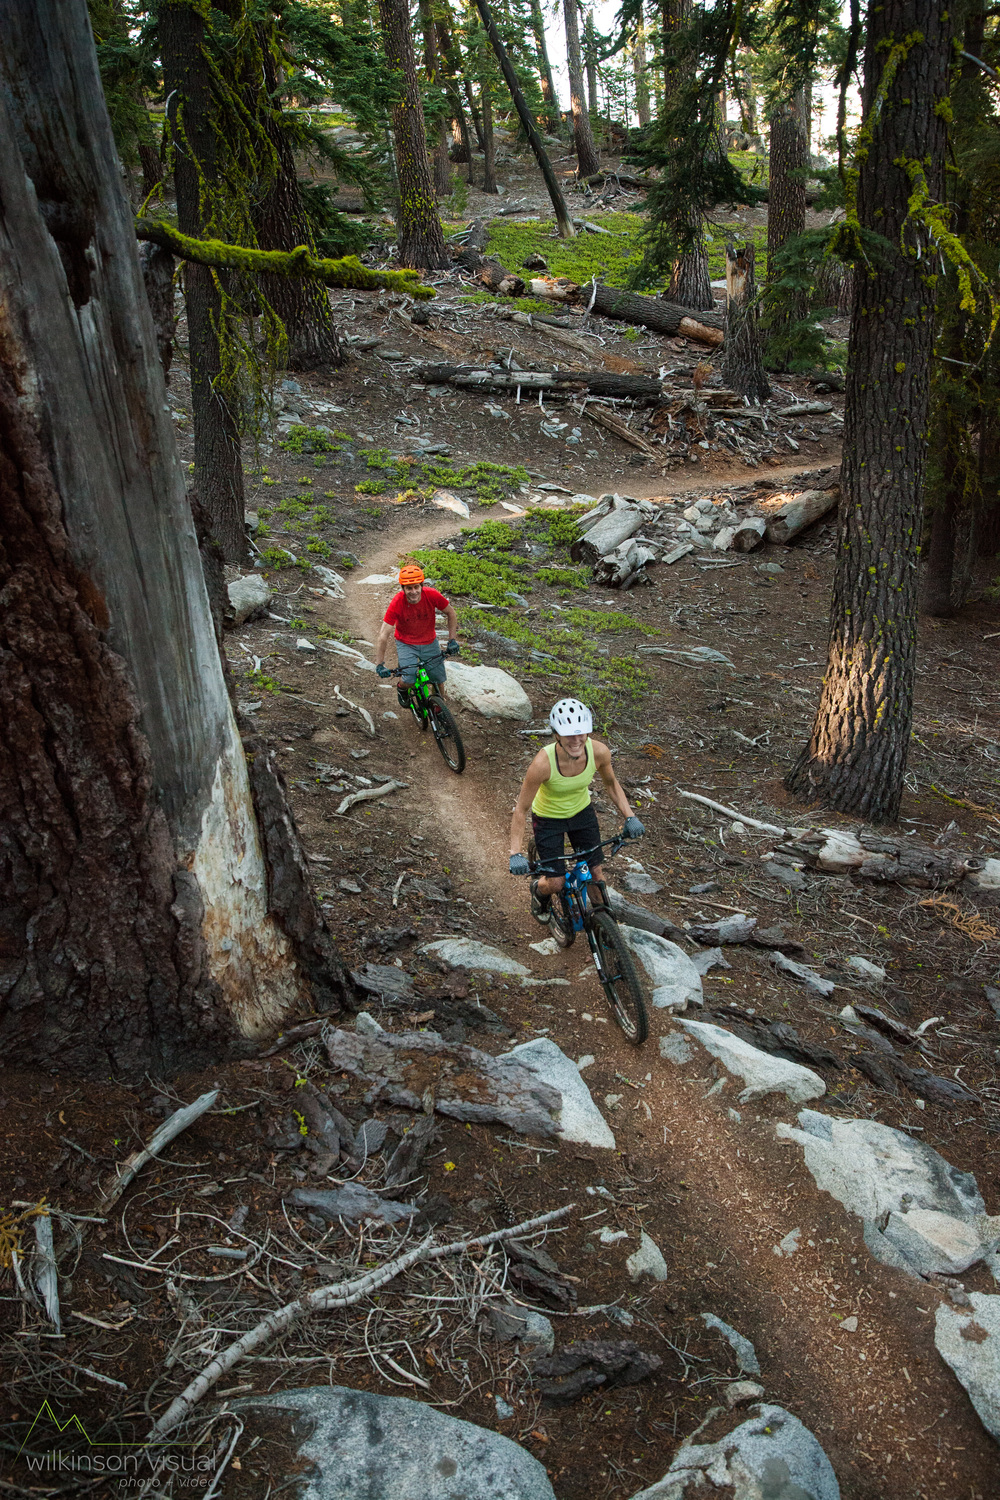 mtb-tahoe-17-Edit.jpg